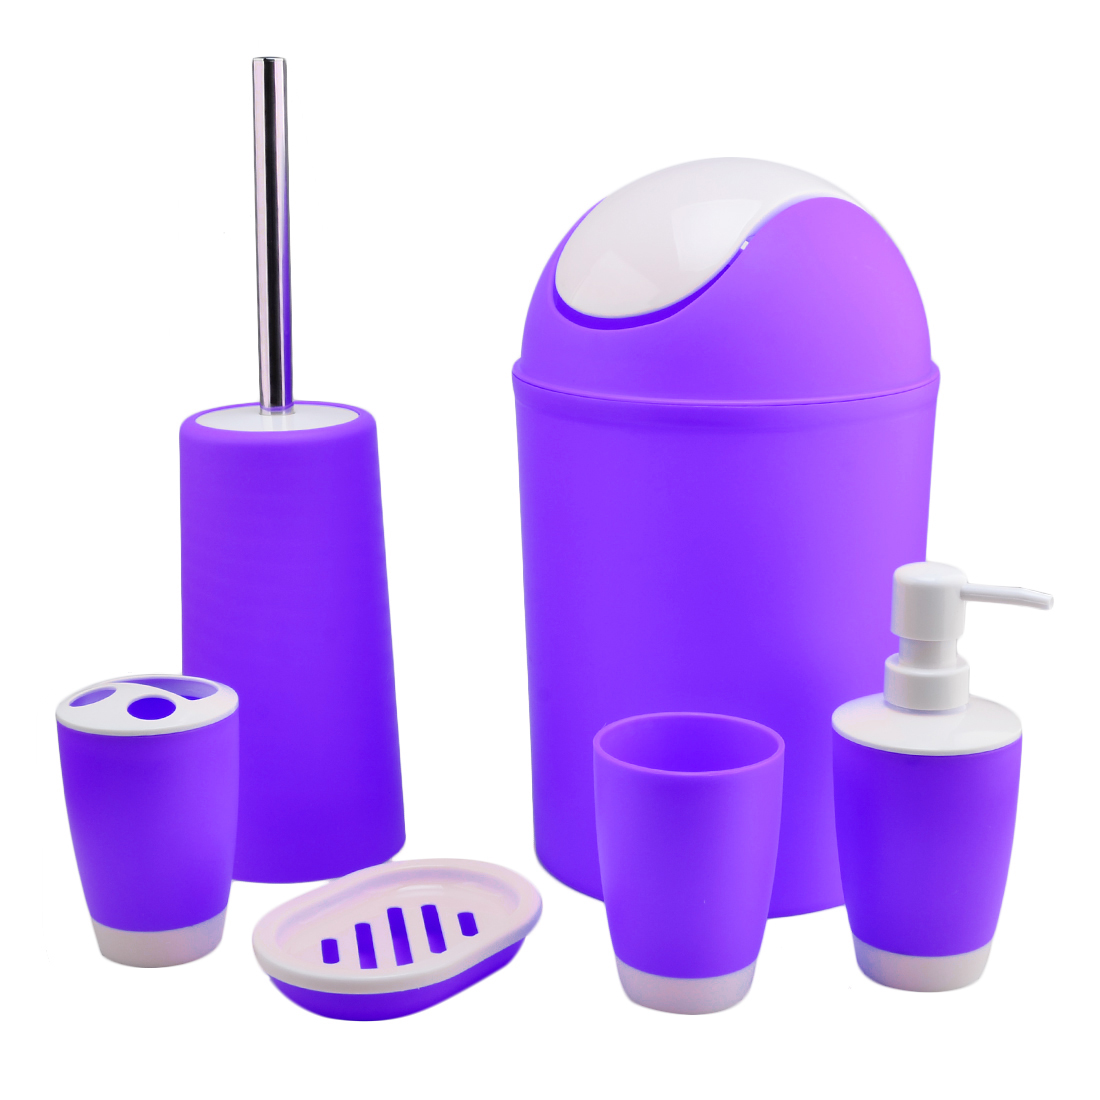 6-Piece Bathroom Accessories Set Lotion Pump Plastic Bathroom Bath Accessories Assorted... by